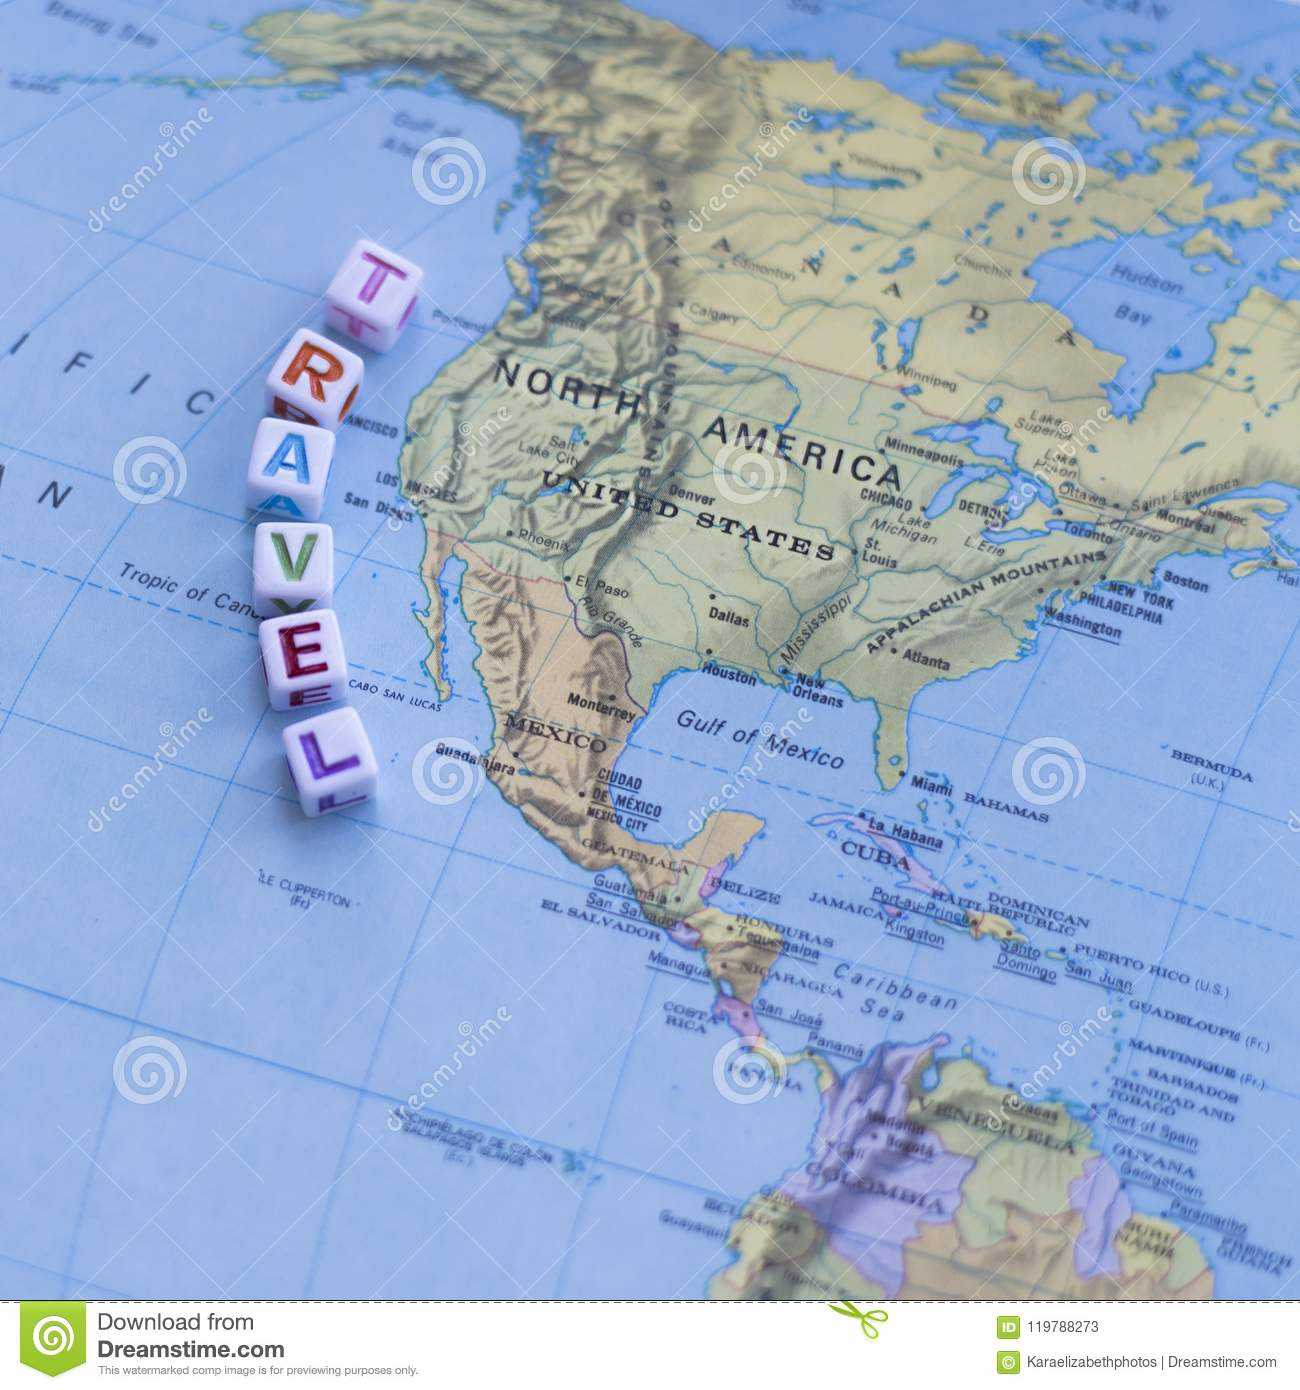 Fun Colorful North America USA Travel Map Stock Image - Image of ...